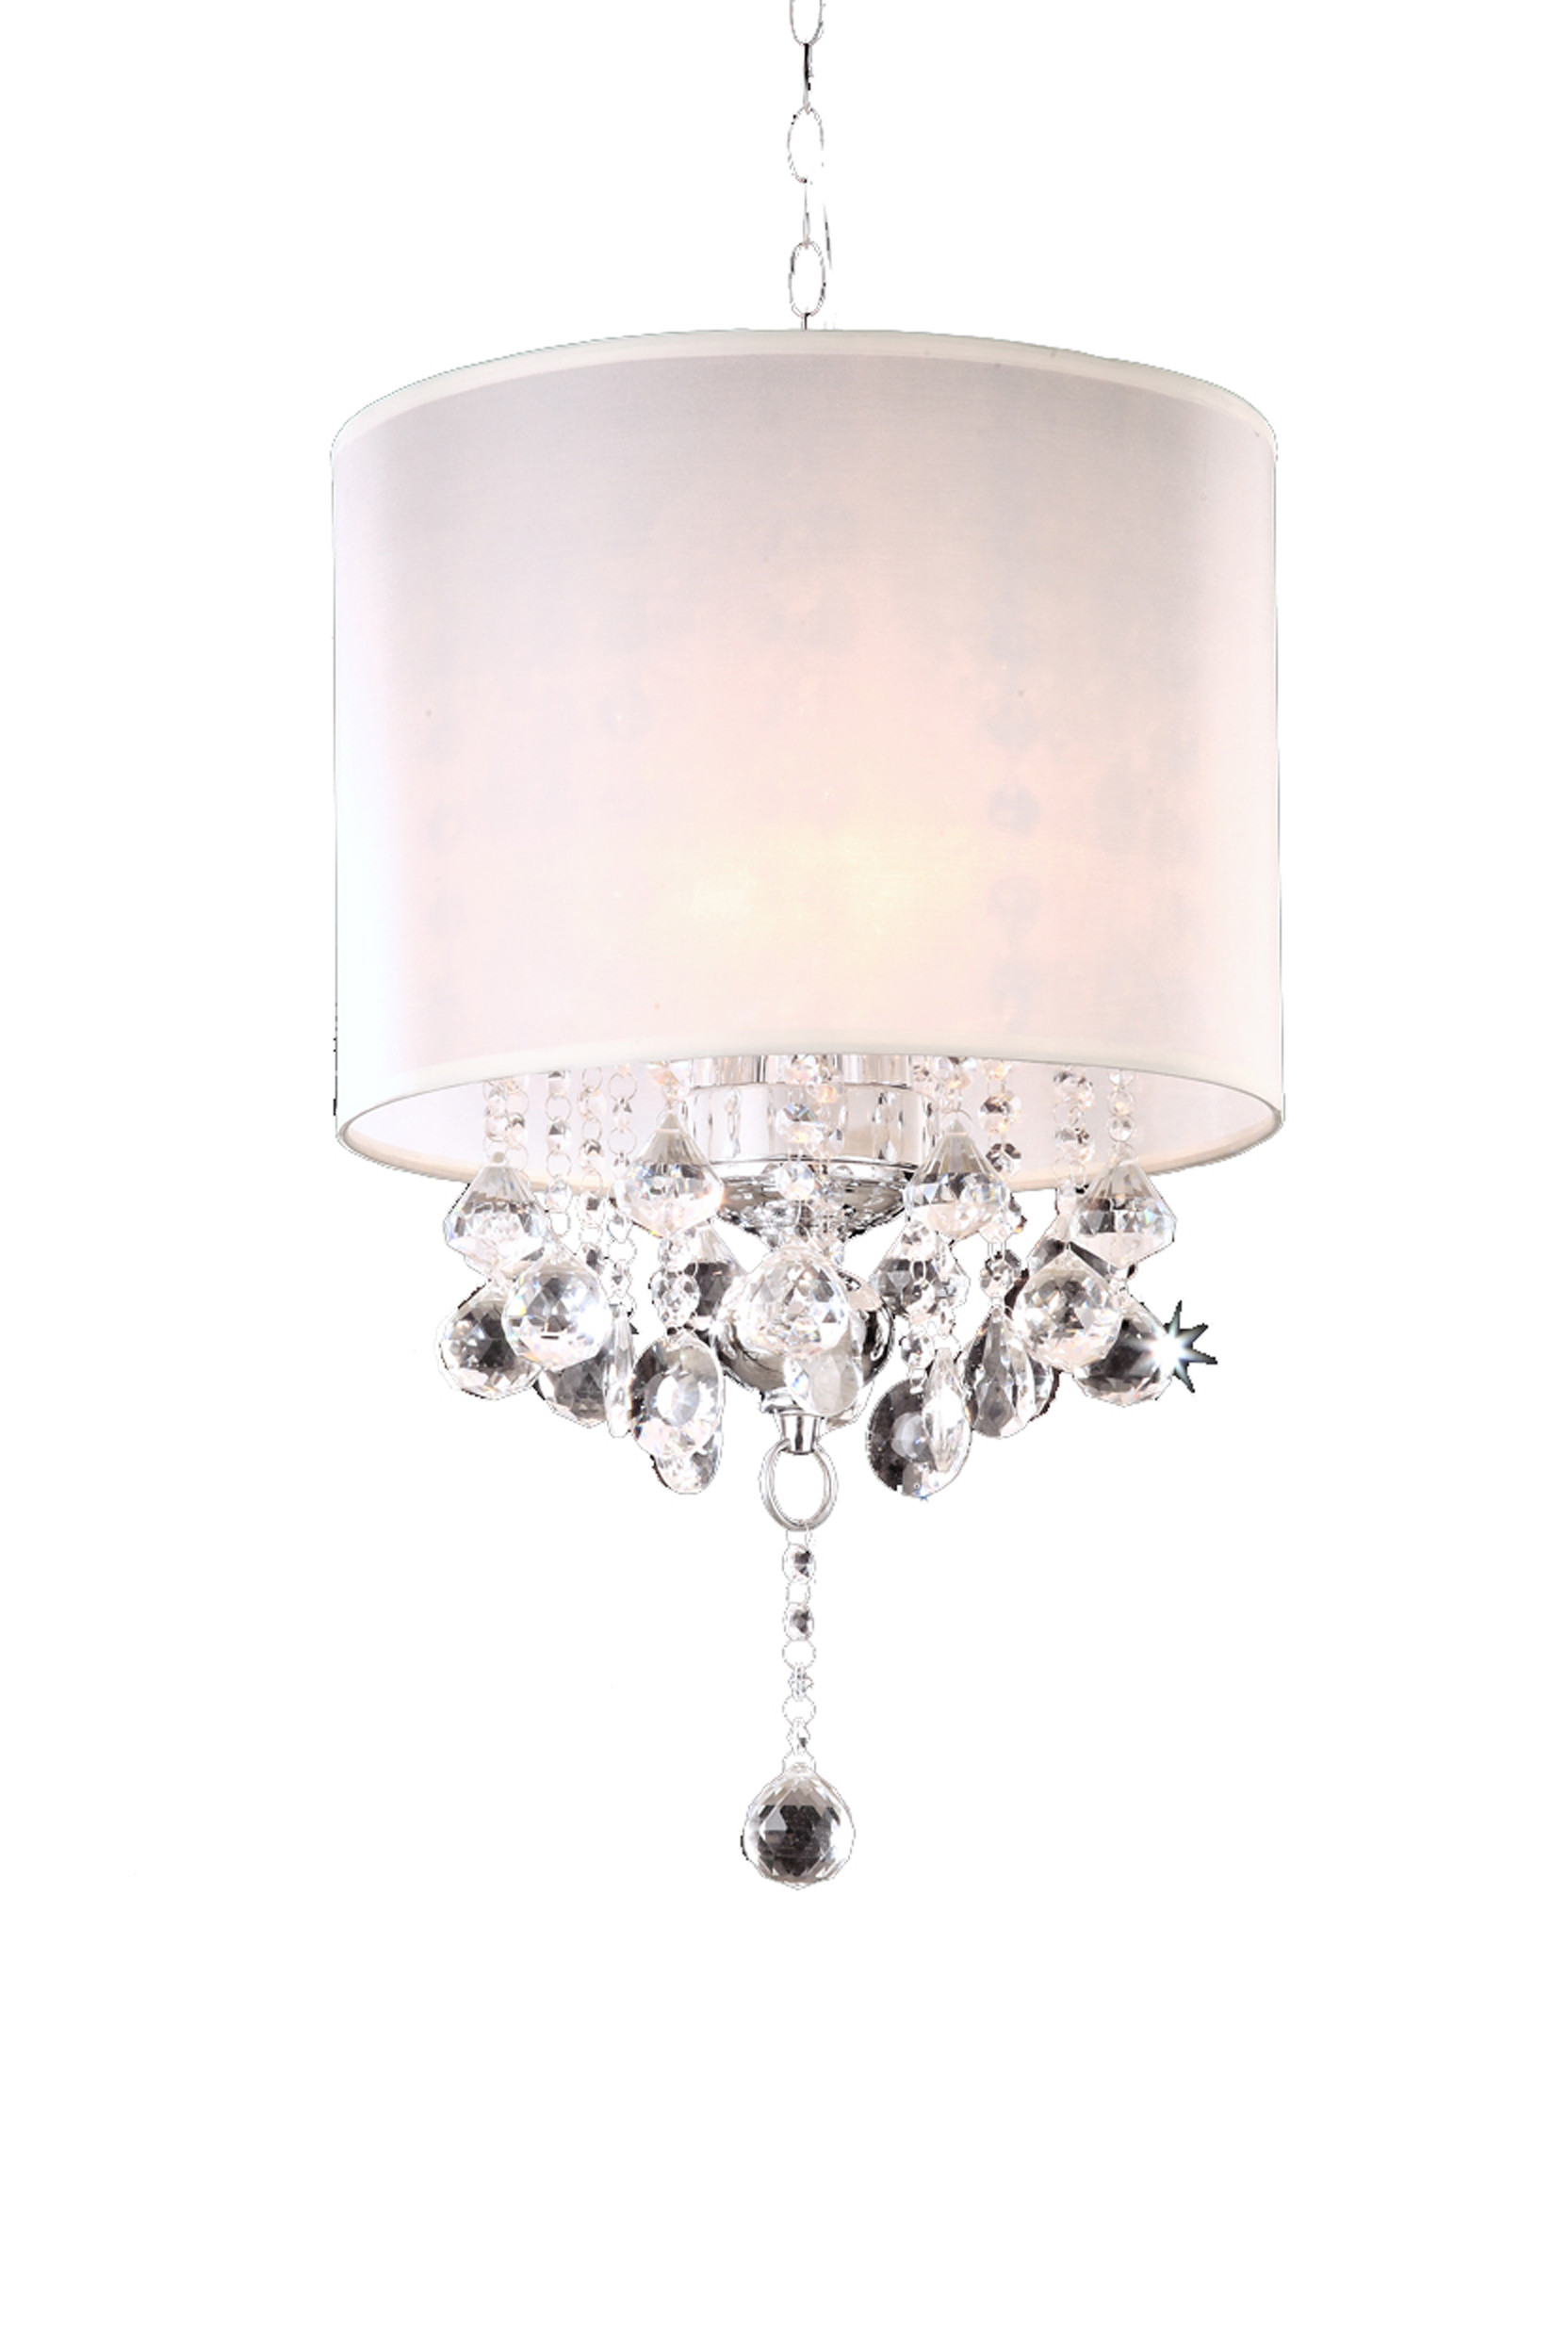 crystal silver chandelier ok 5110h super home surplus store view